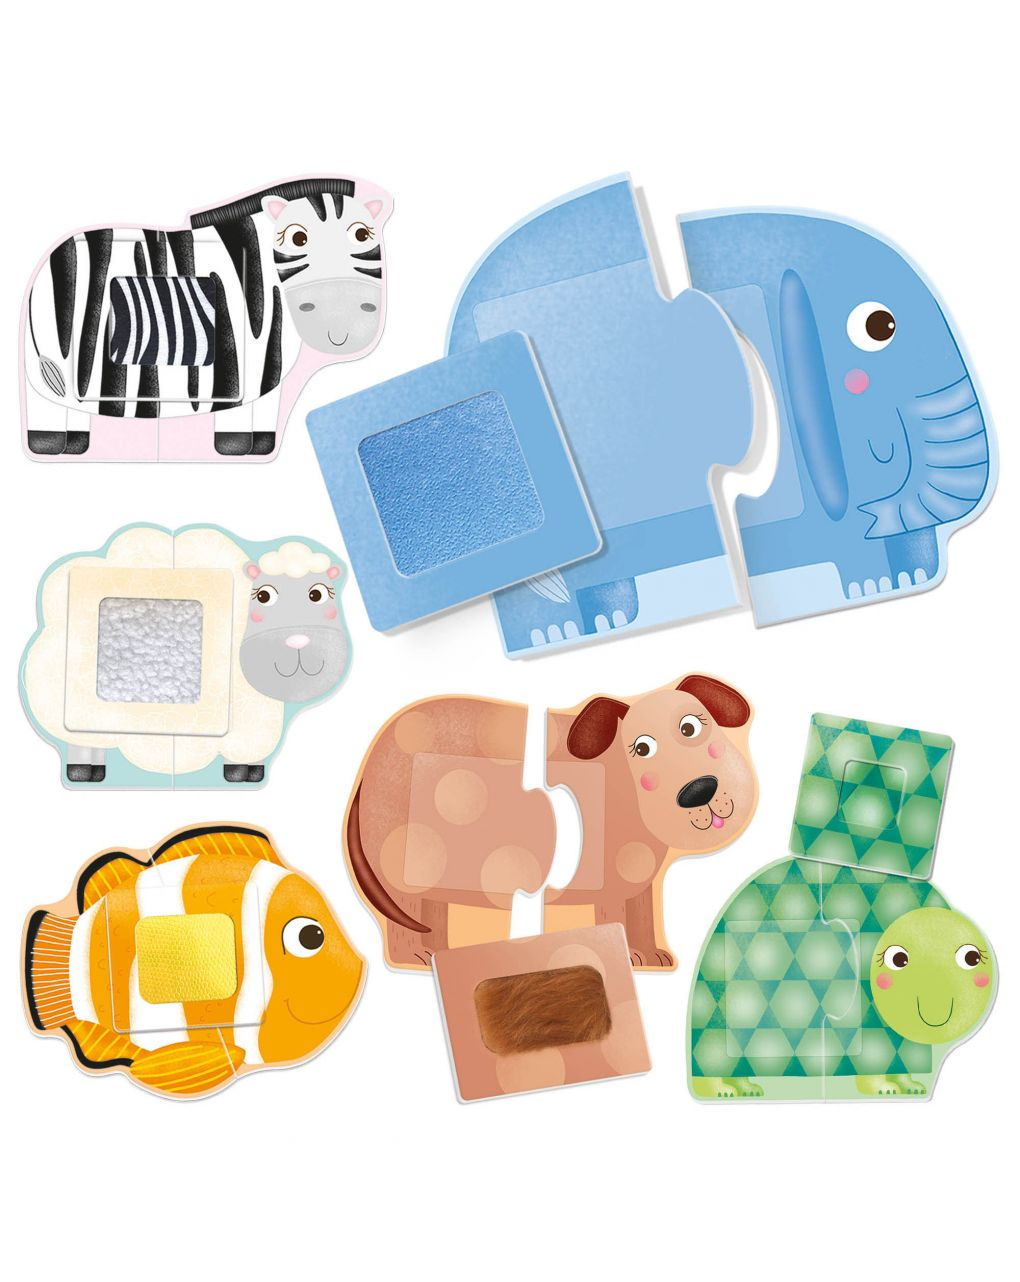 Headu - tactile animals montessori - Headu